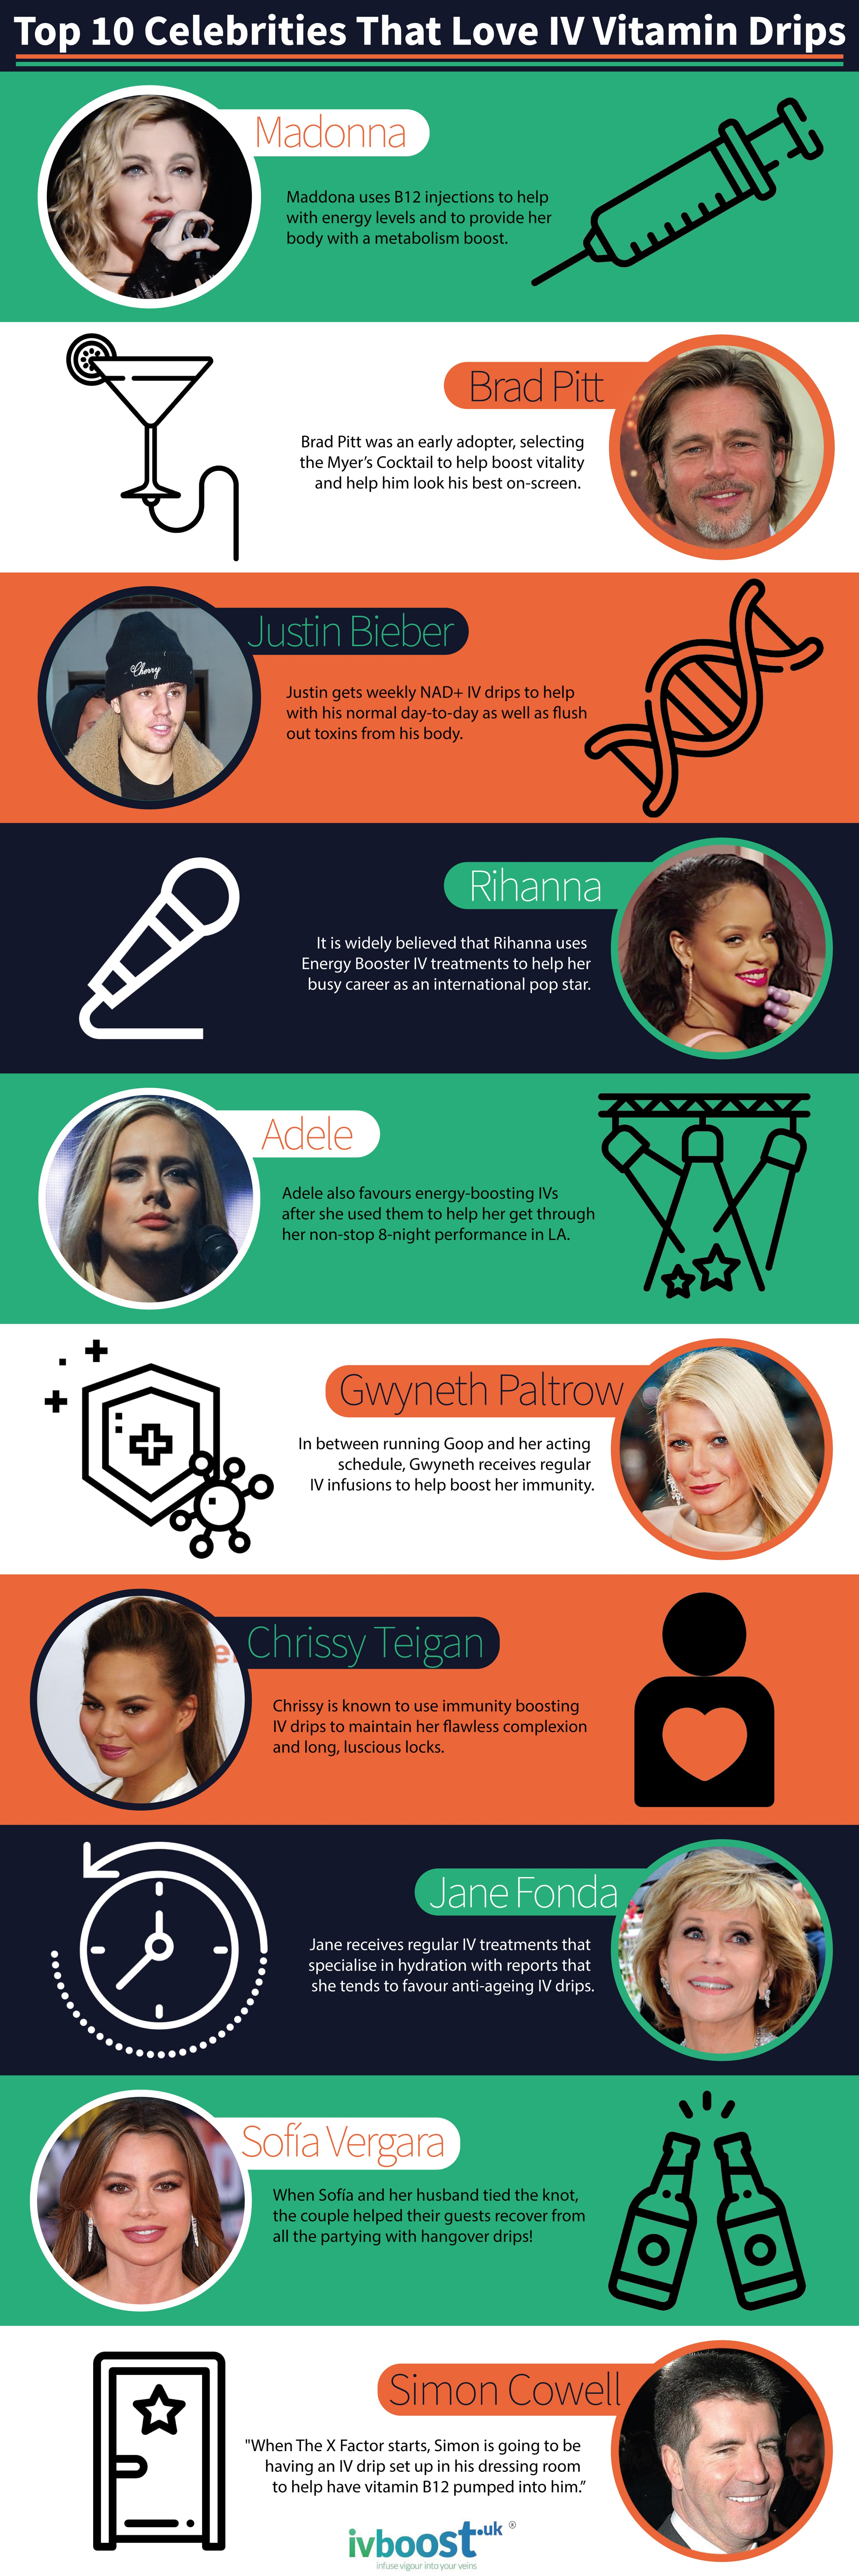 Infographic that shows the Top 10 Celebrities That Love IV Vitamin Drips